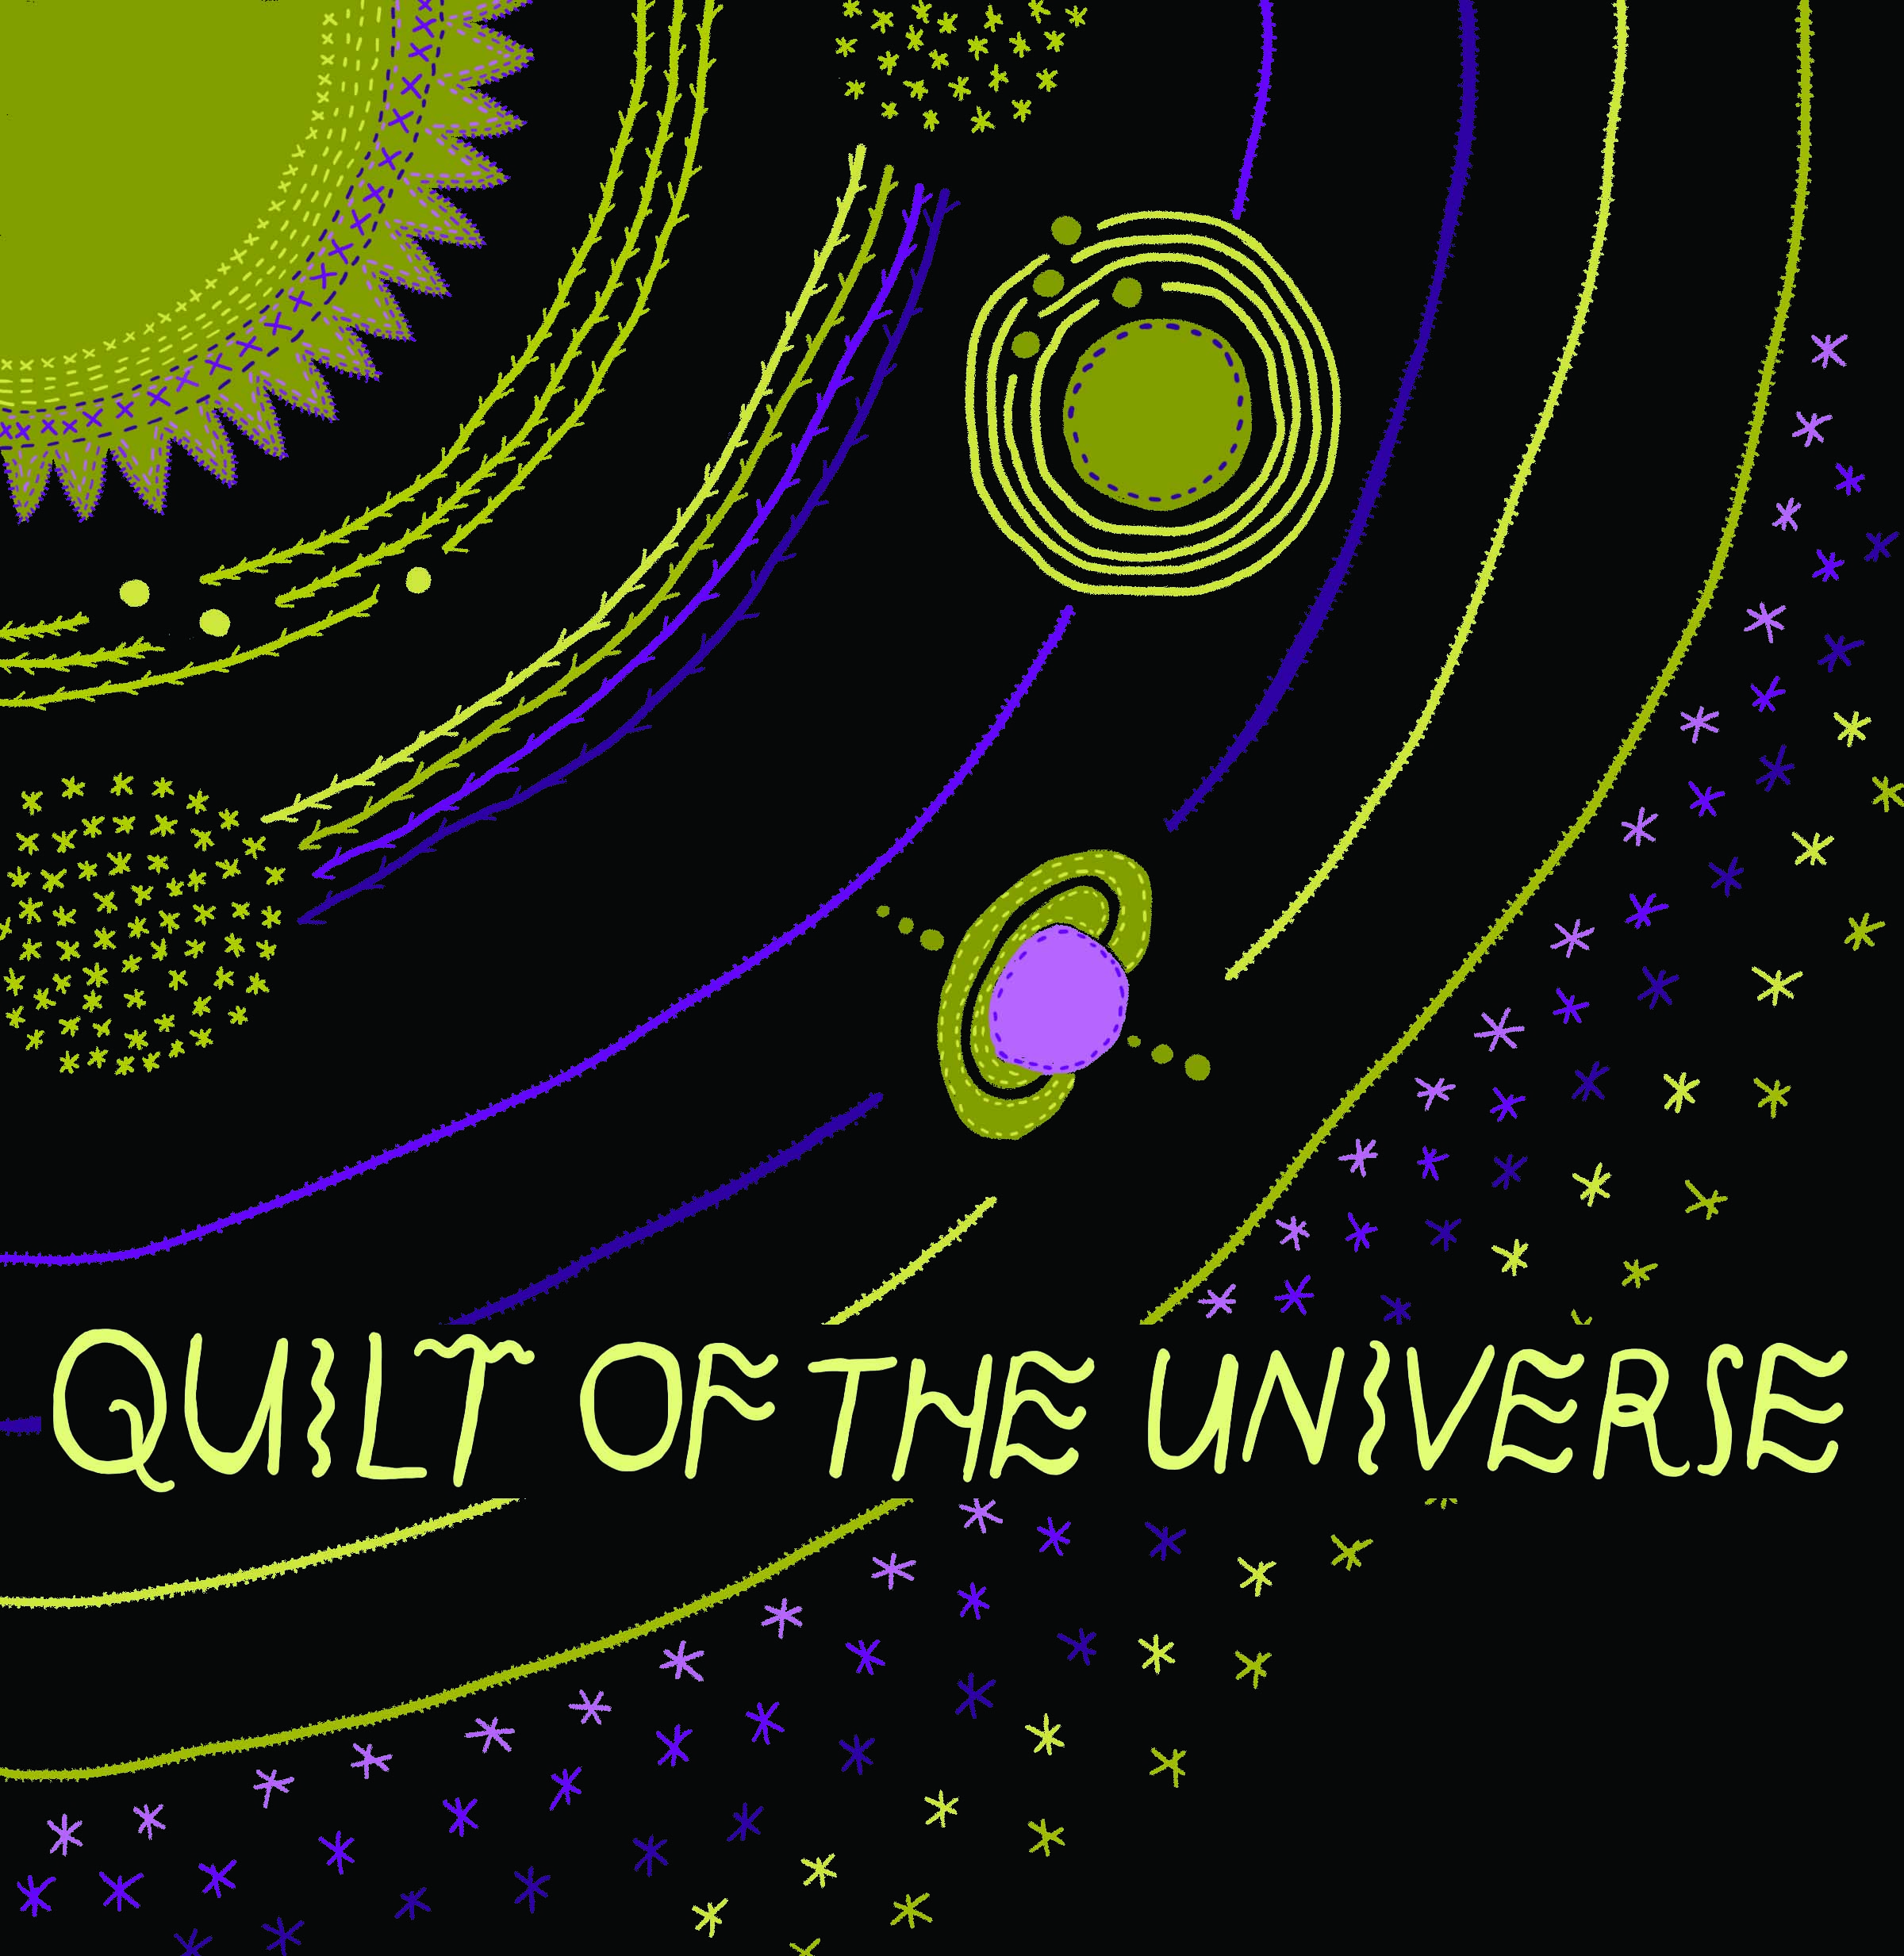 V/A - Quilt of the Universe - Out 6/21 | Pre-order